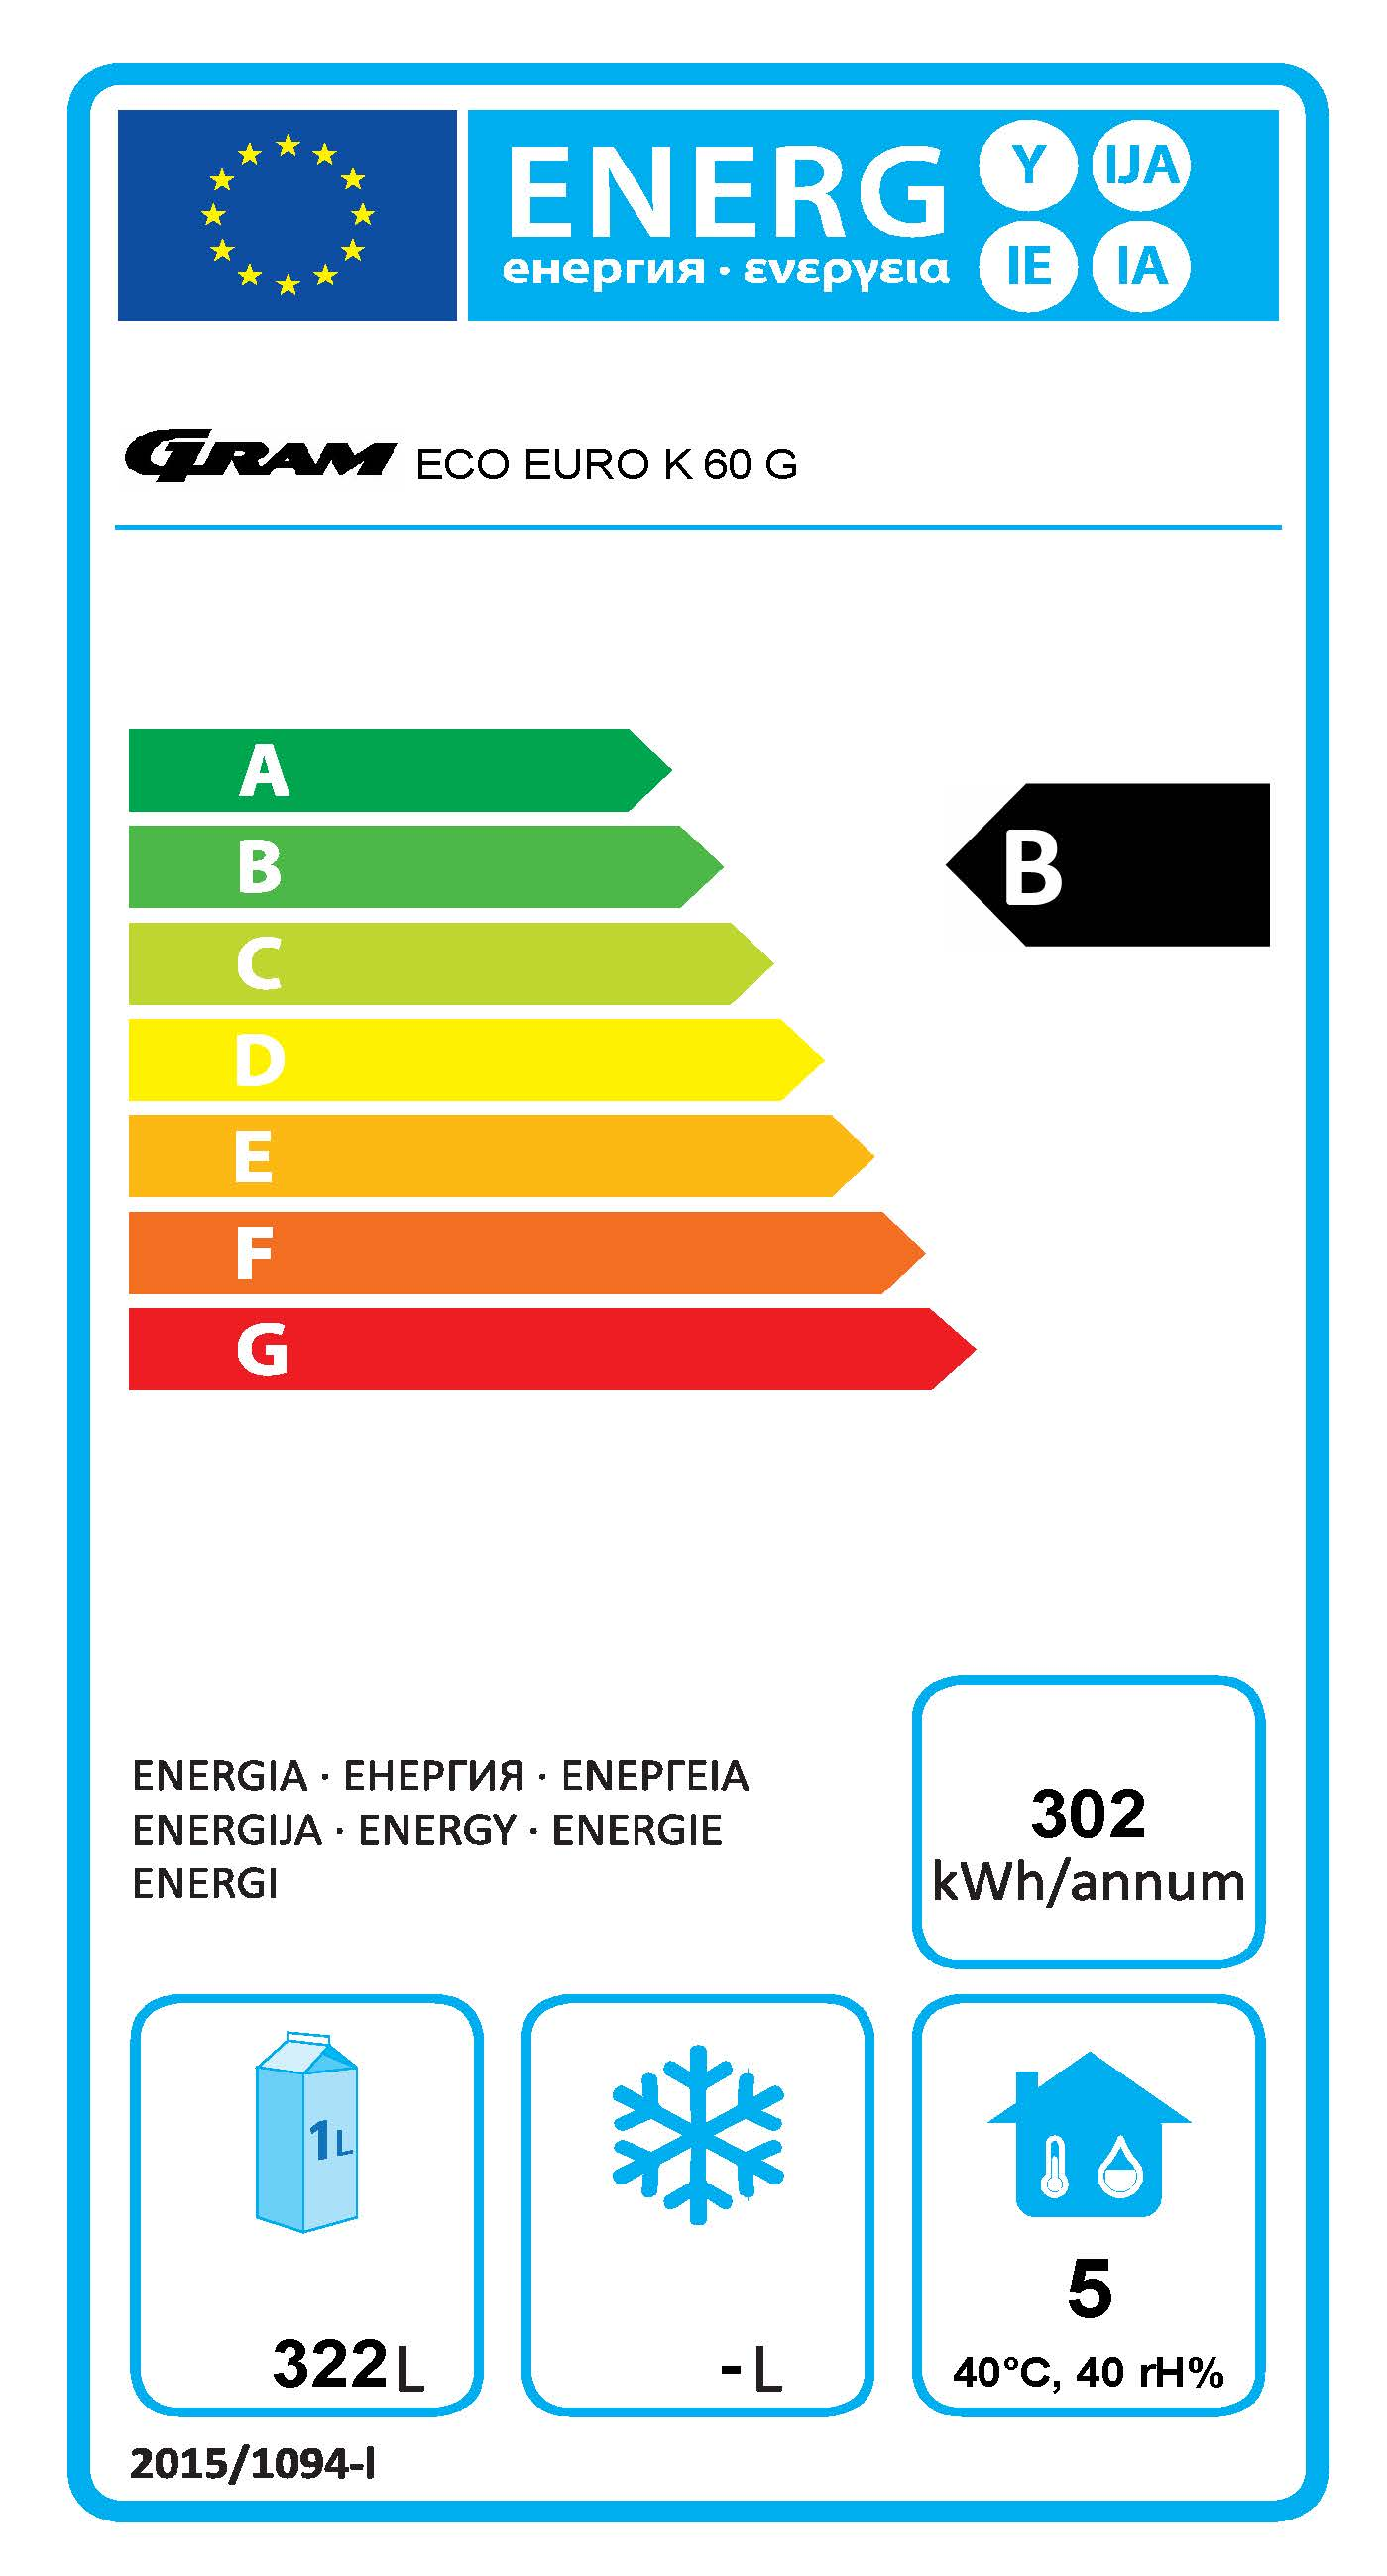 ECO EURO K 60 CCG C1 4N 465 Ltr Upright Refrigerator Energy Rating